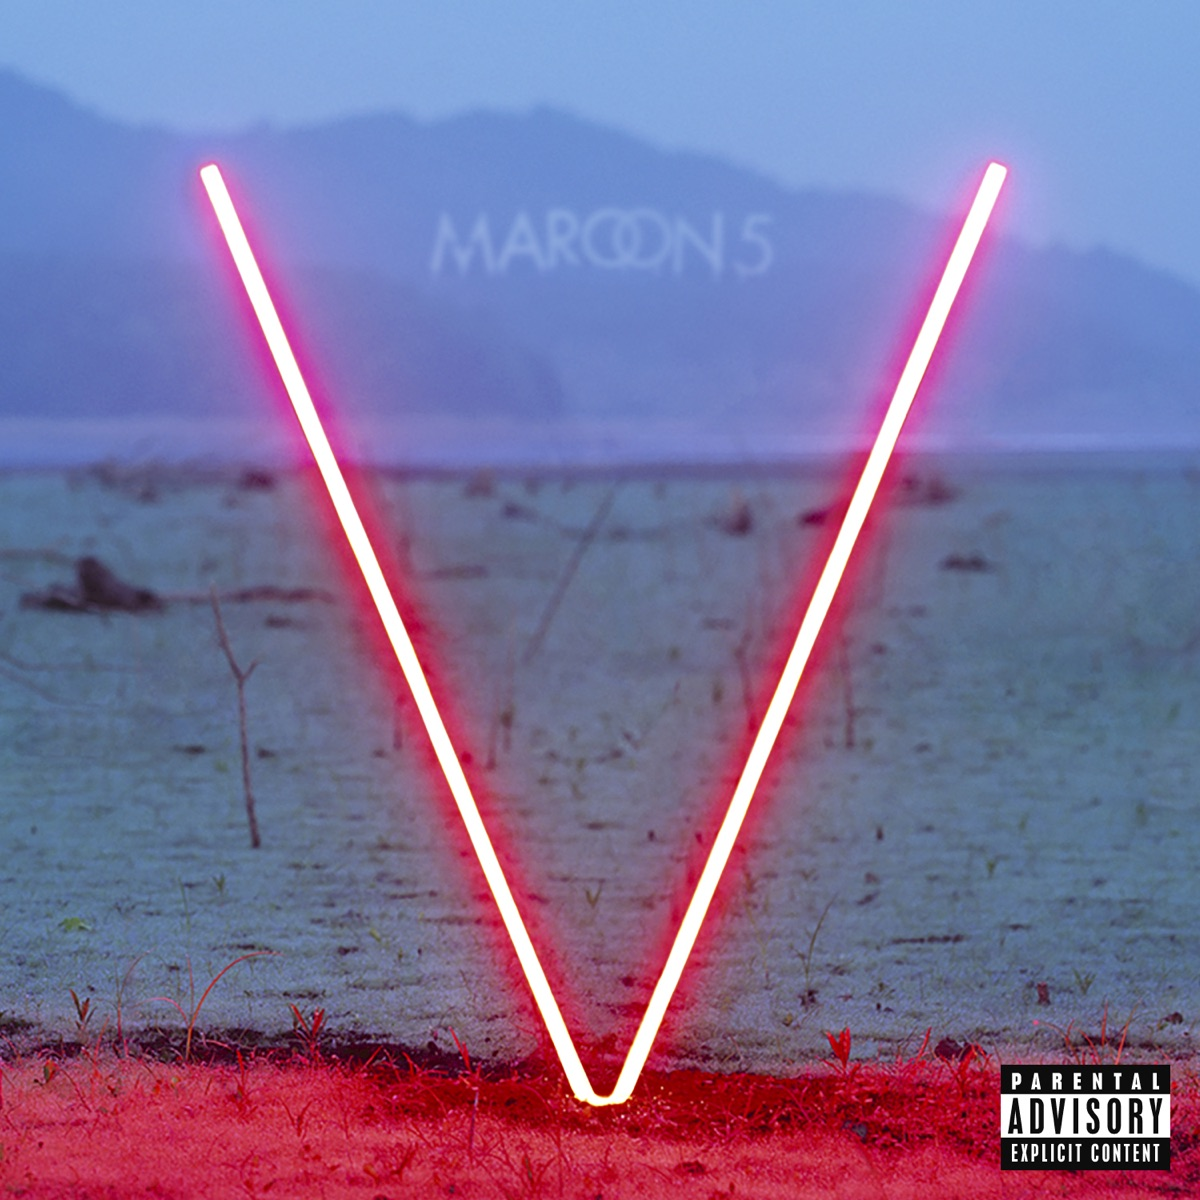 V Deluxe Maroon 5 CD cover